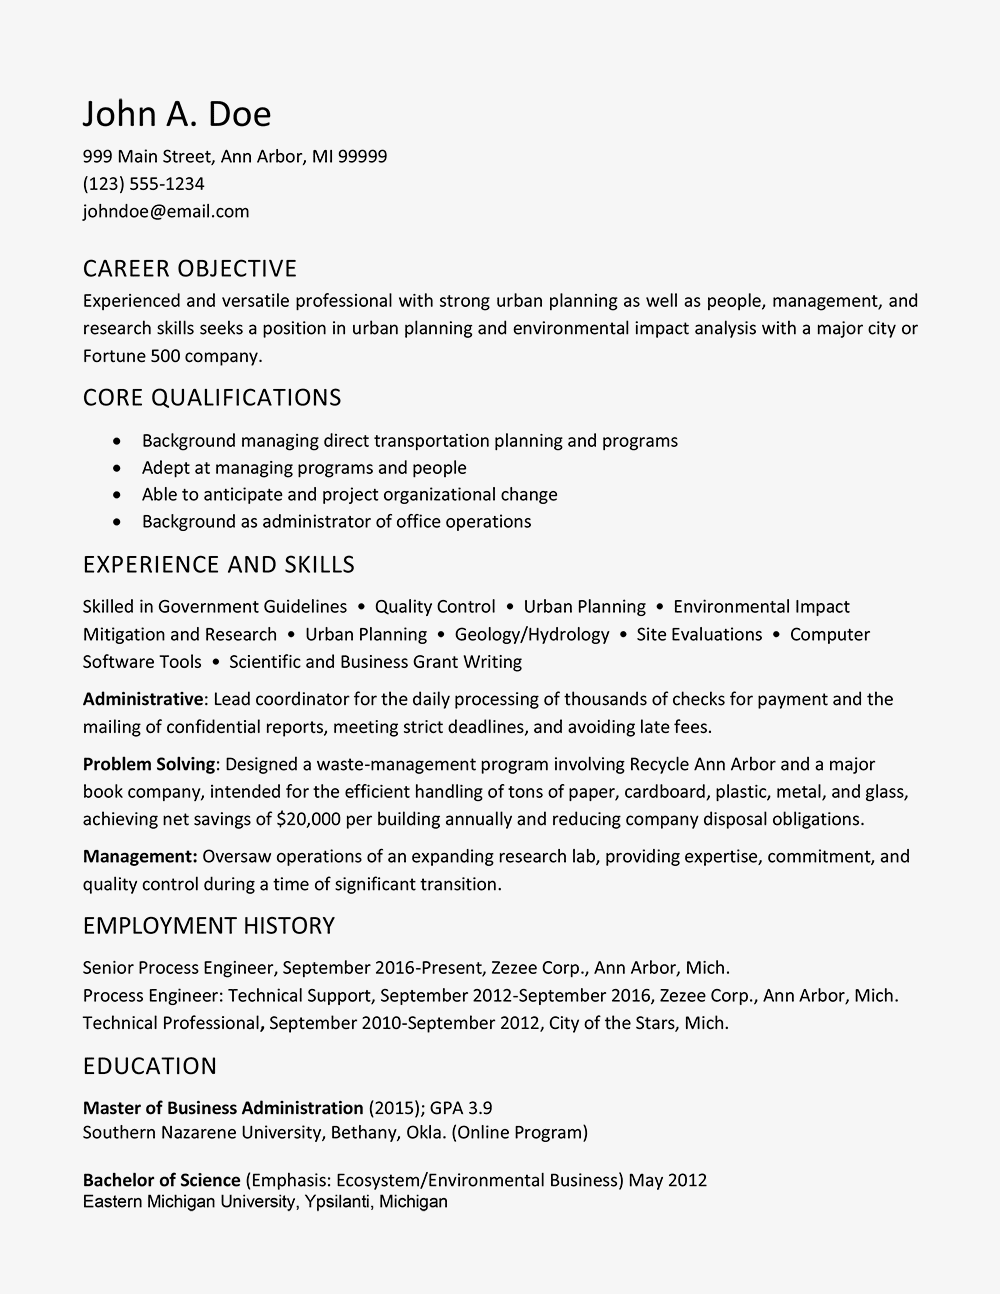 Resume Example Of An HR